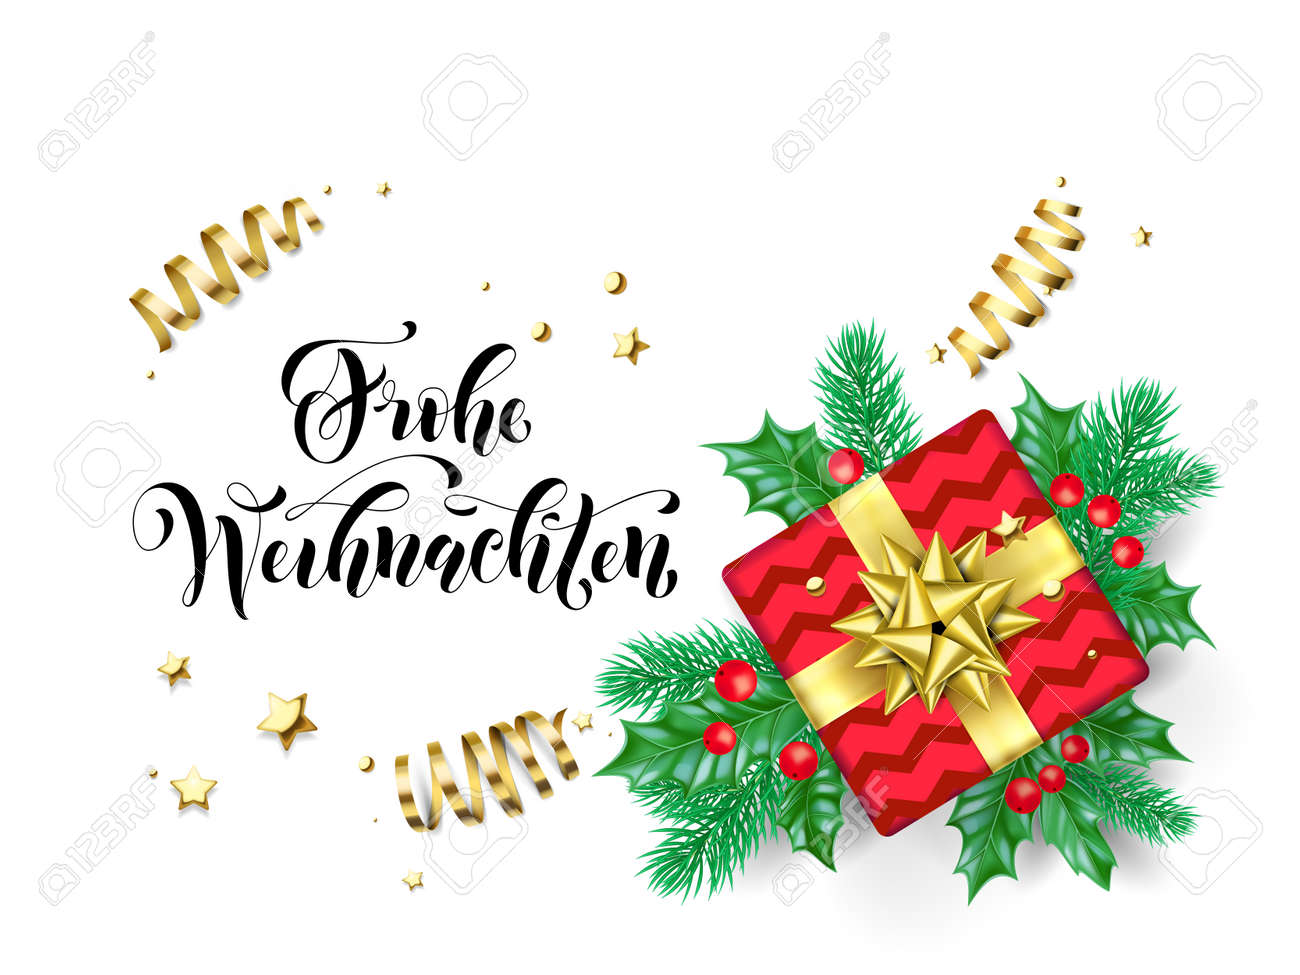 Merry Christmas German.Frohe Weihnachten Merry Christmas German Holiday Hand Drawn Quote